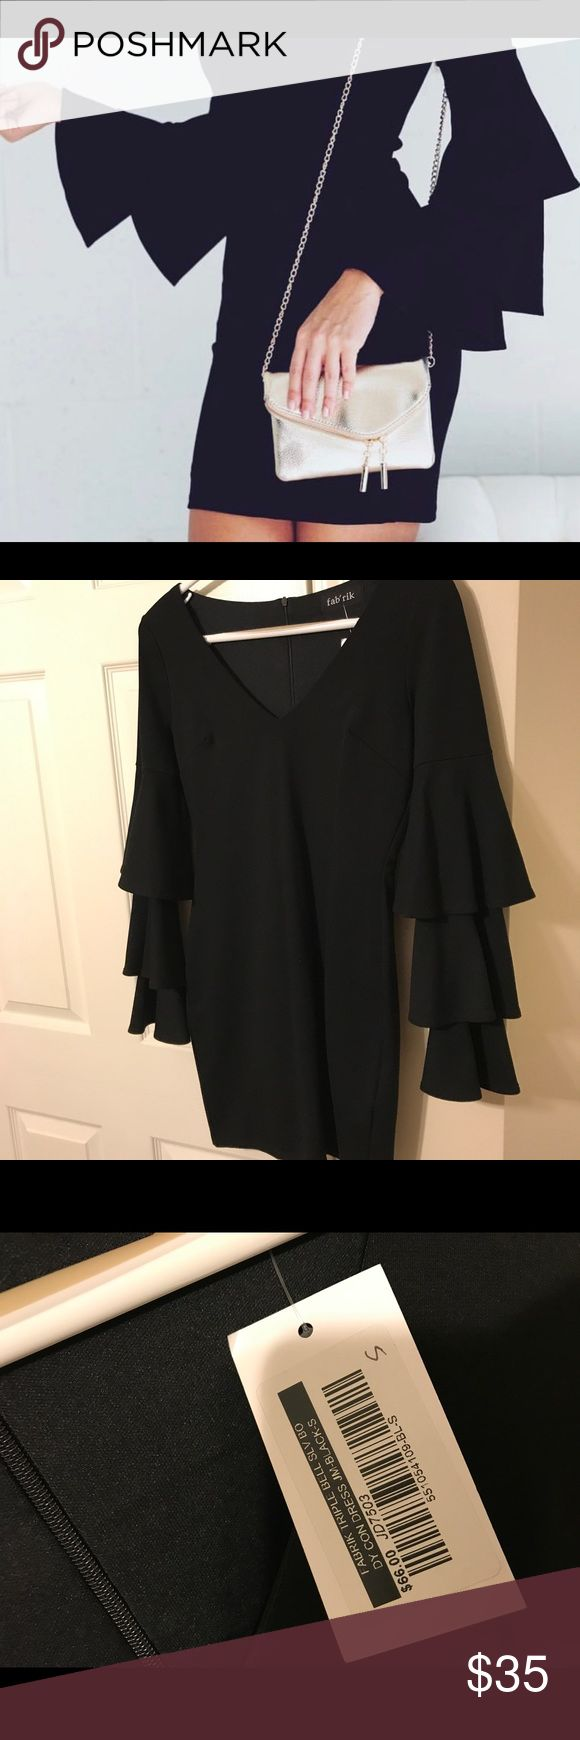 Black bell sleeve dress The perfect little black dress for a girls weekend, date night or evening wedding! Super comfortable and flattering. Zipper back. Never worn. New with tags! fabrik Dresses Mini